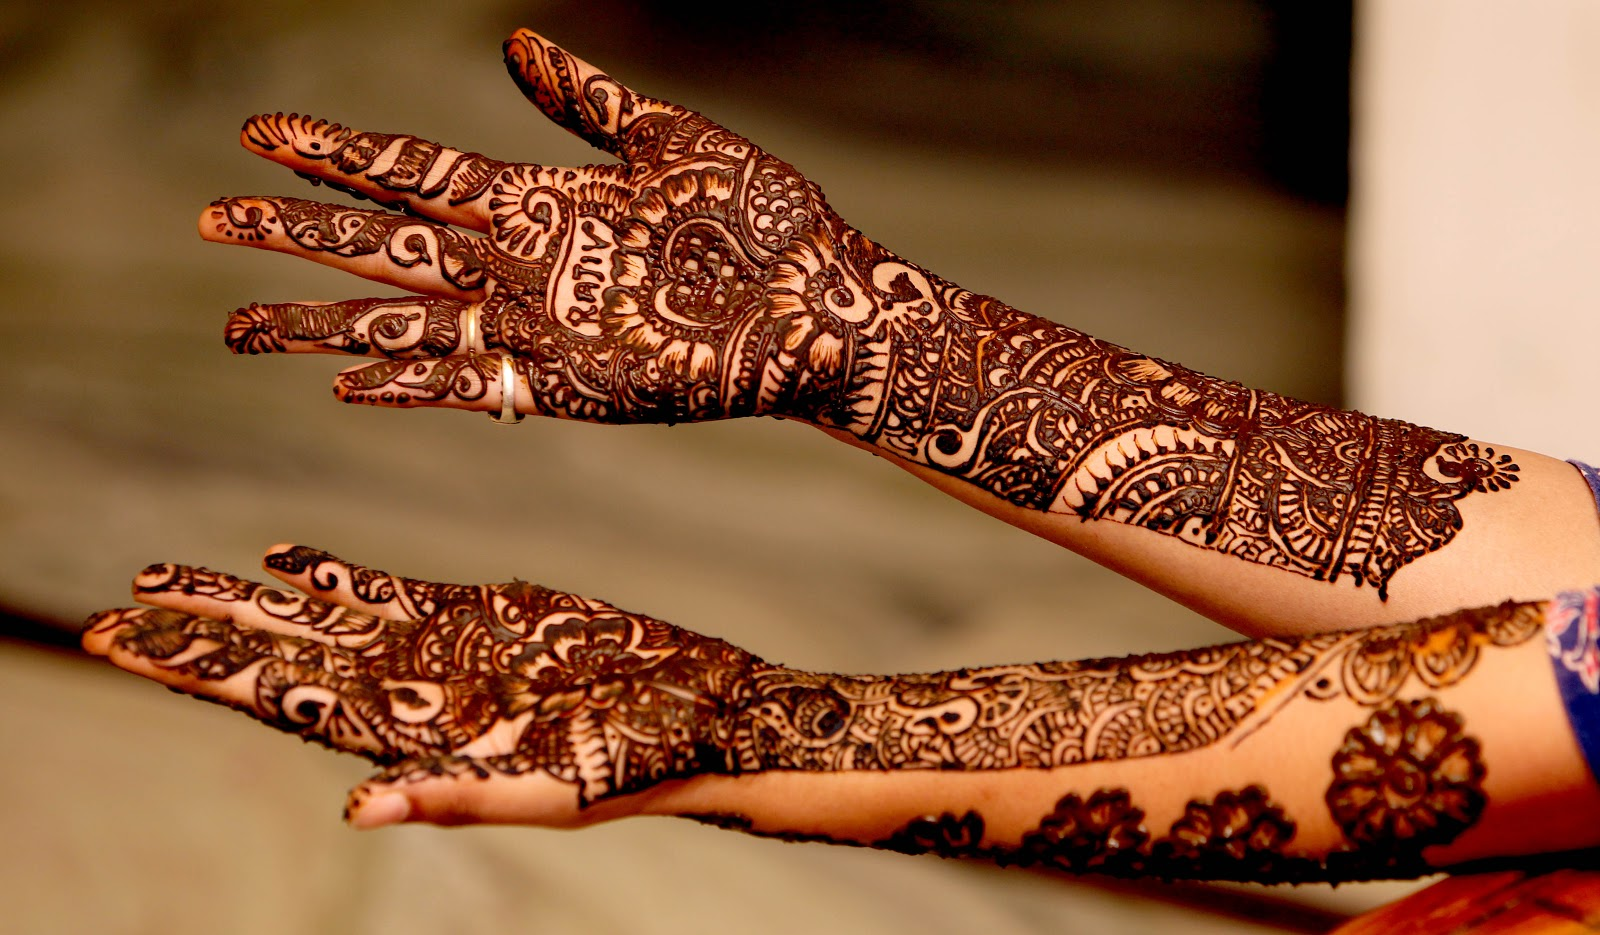 Beautiful Mehndi Designs and Latest Mehndi Patterns | rajiv pundir